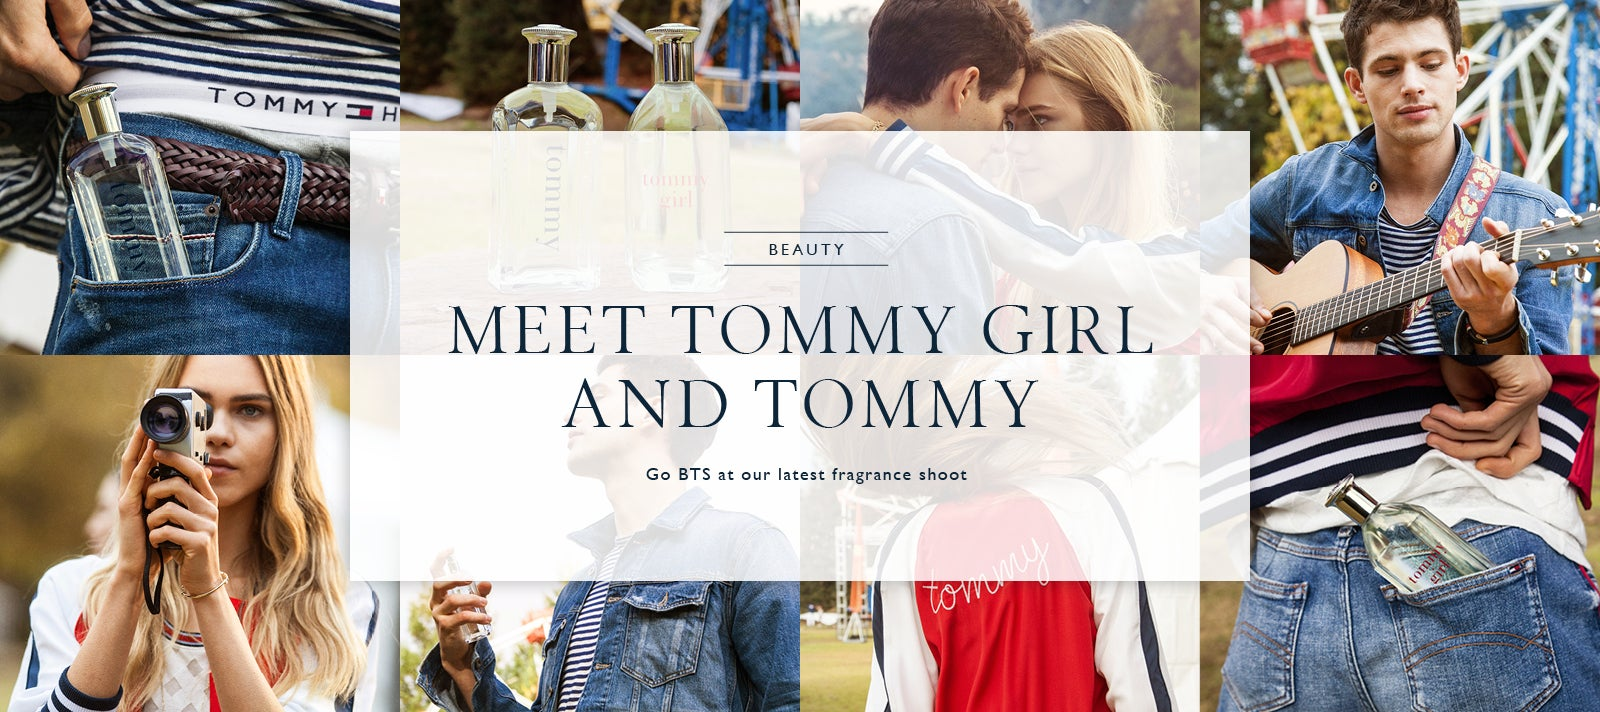 A collage of behind the scenes photos at a country fair featuring two models as 'Tommy' and 'Tommy Girl', promoting our latest line of fragrances.